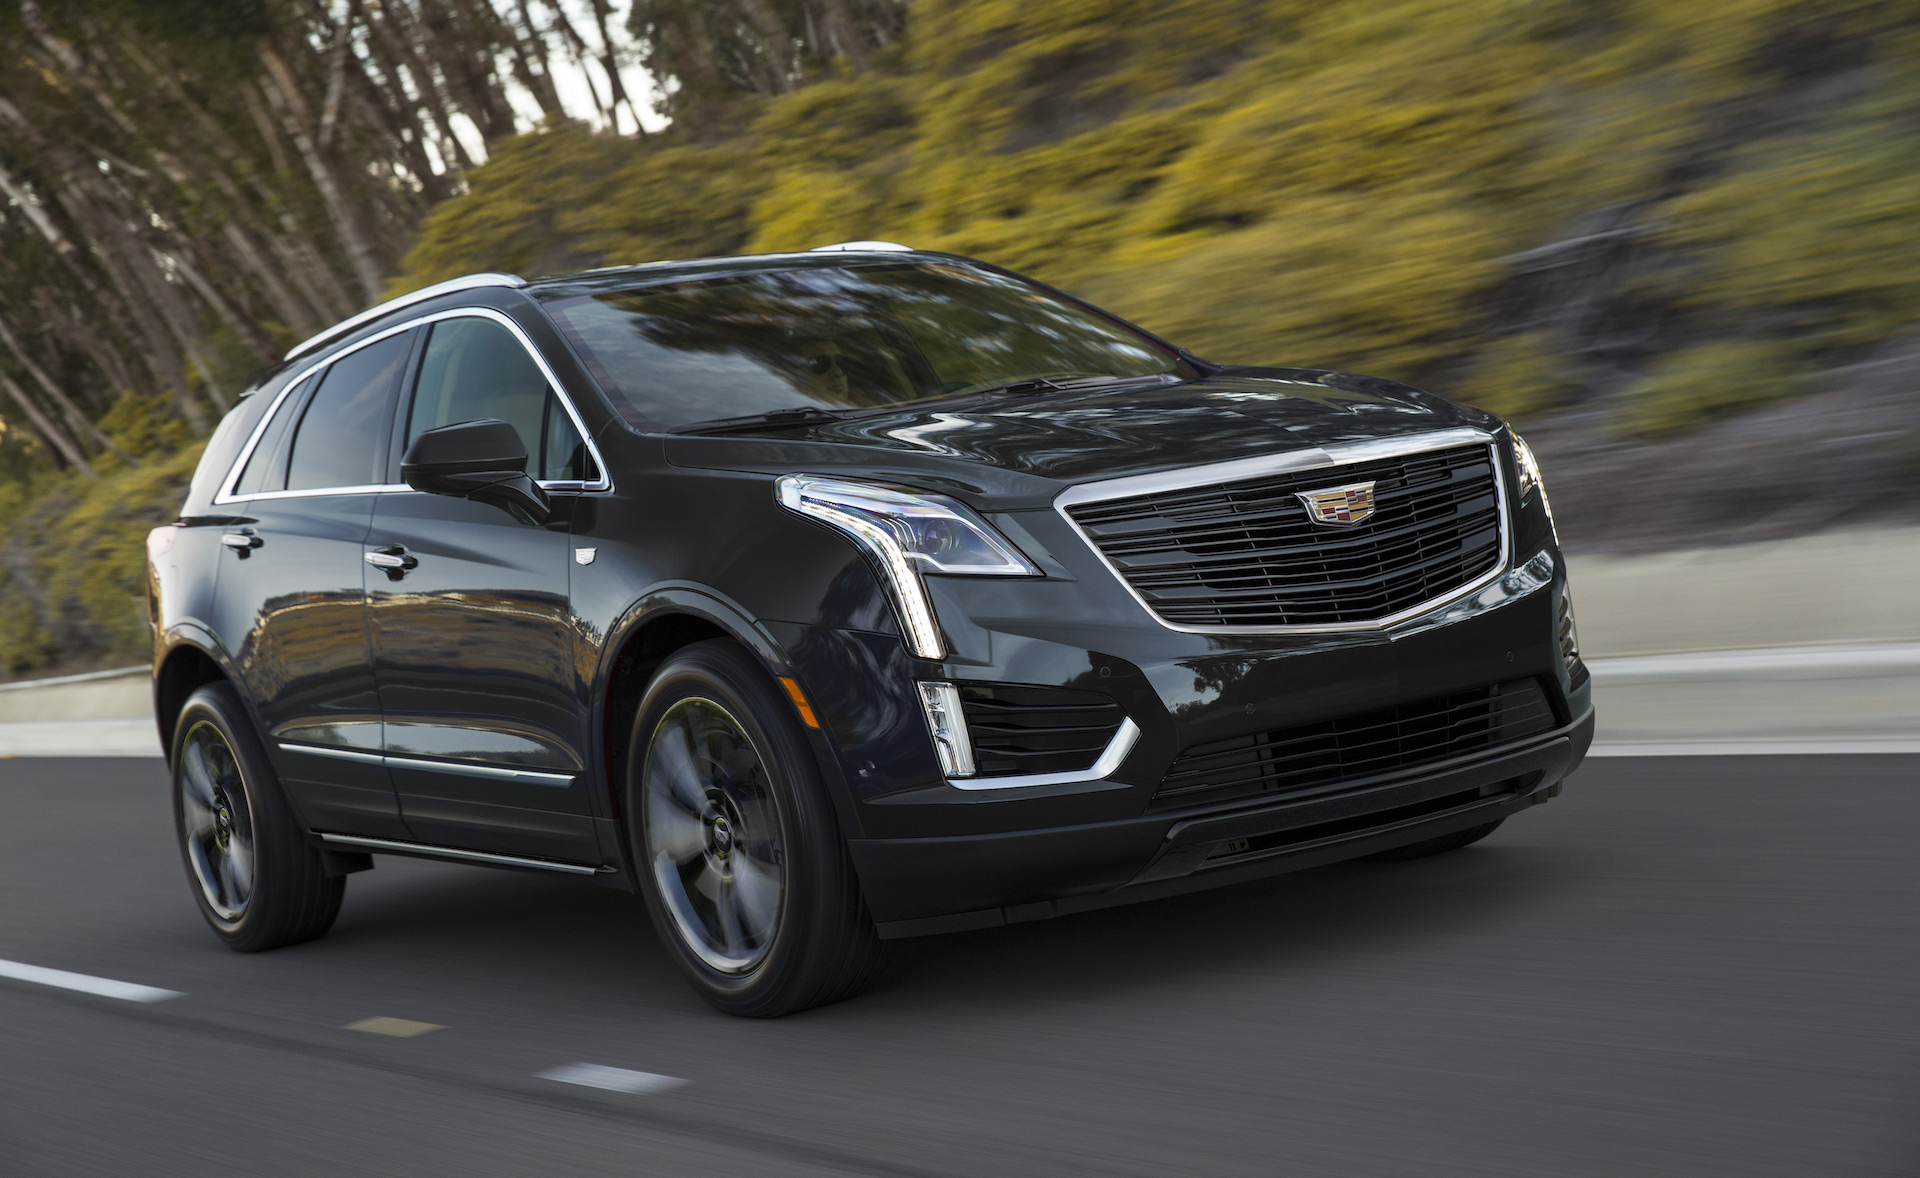 2019 Cadillac XT5 Sport Edition subtly adds style